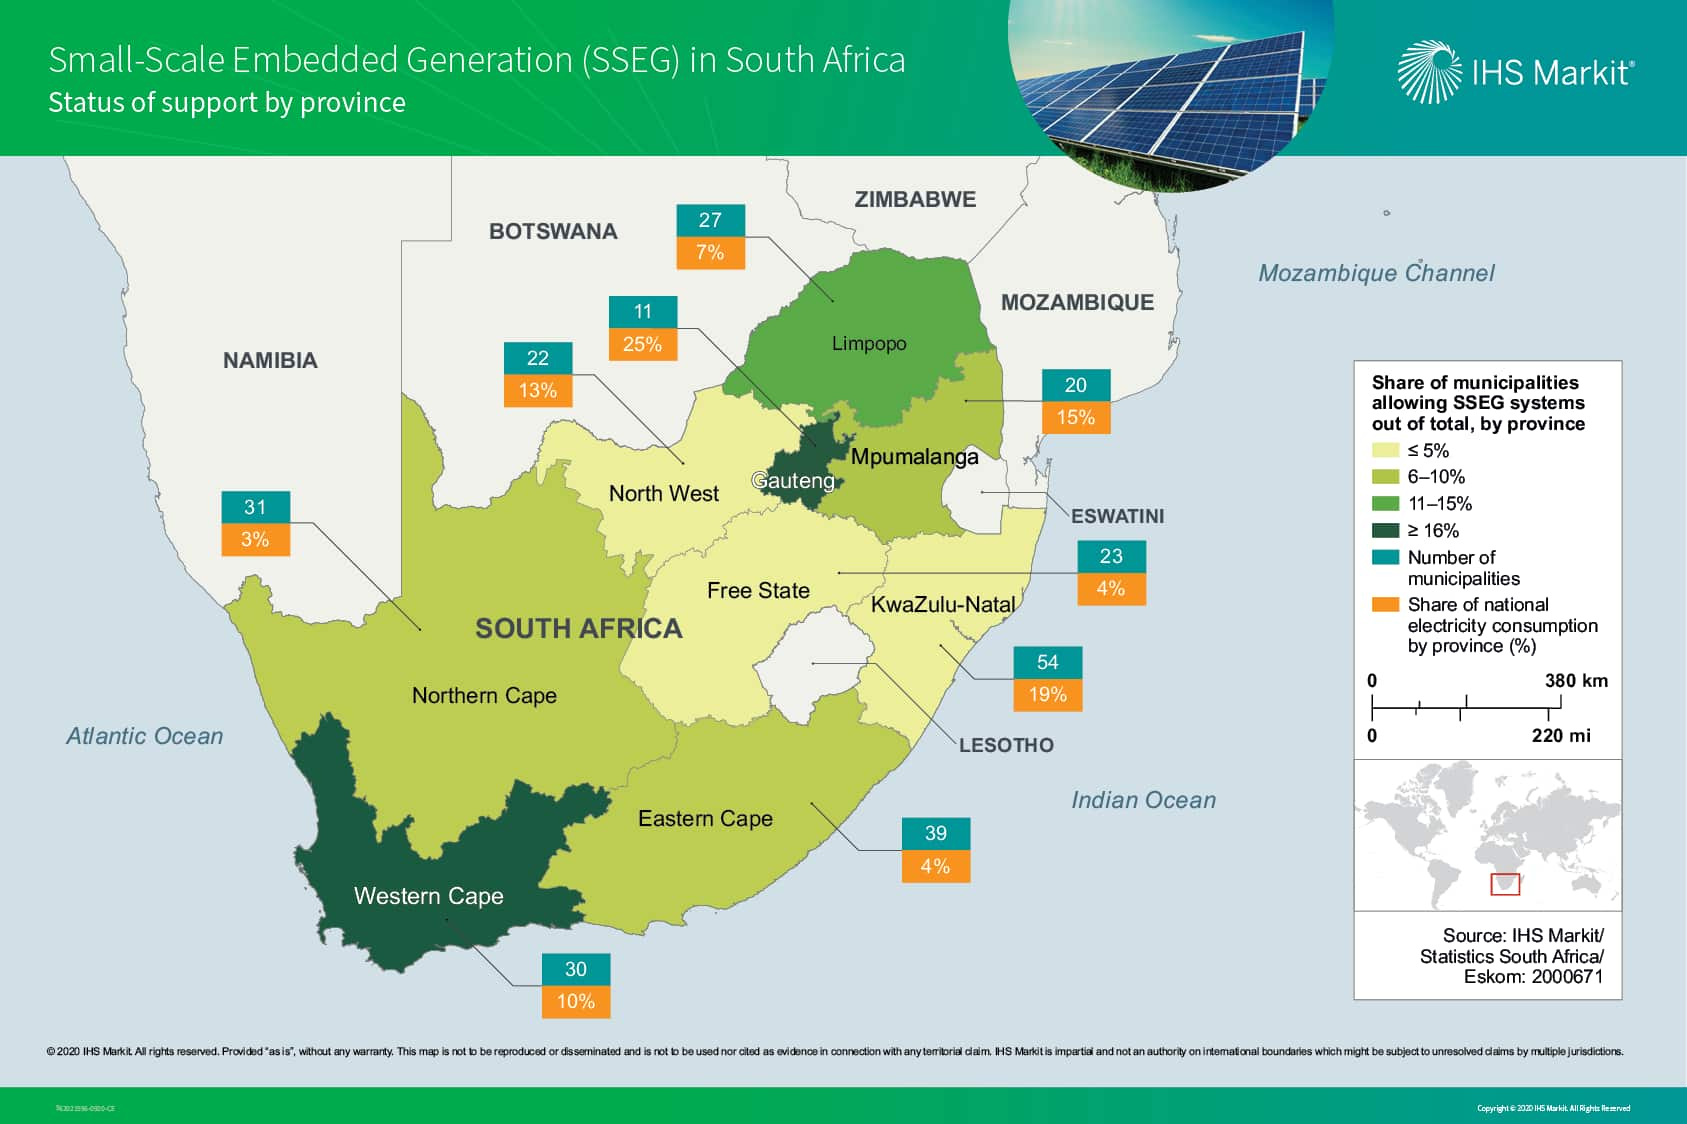 Small-Scale Embedded Generation (SSEG) in South Africa